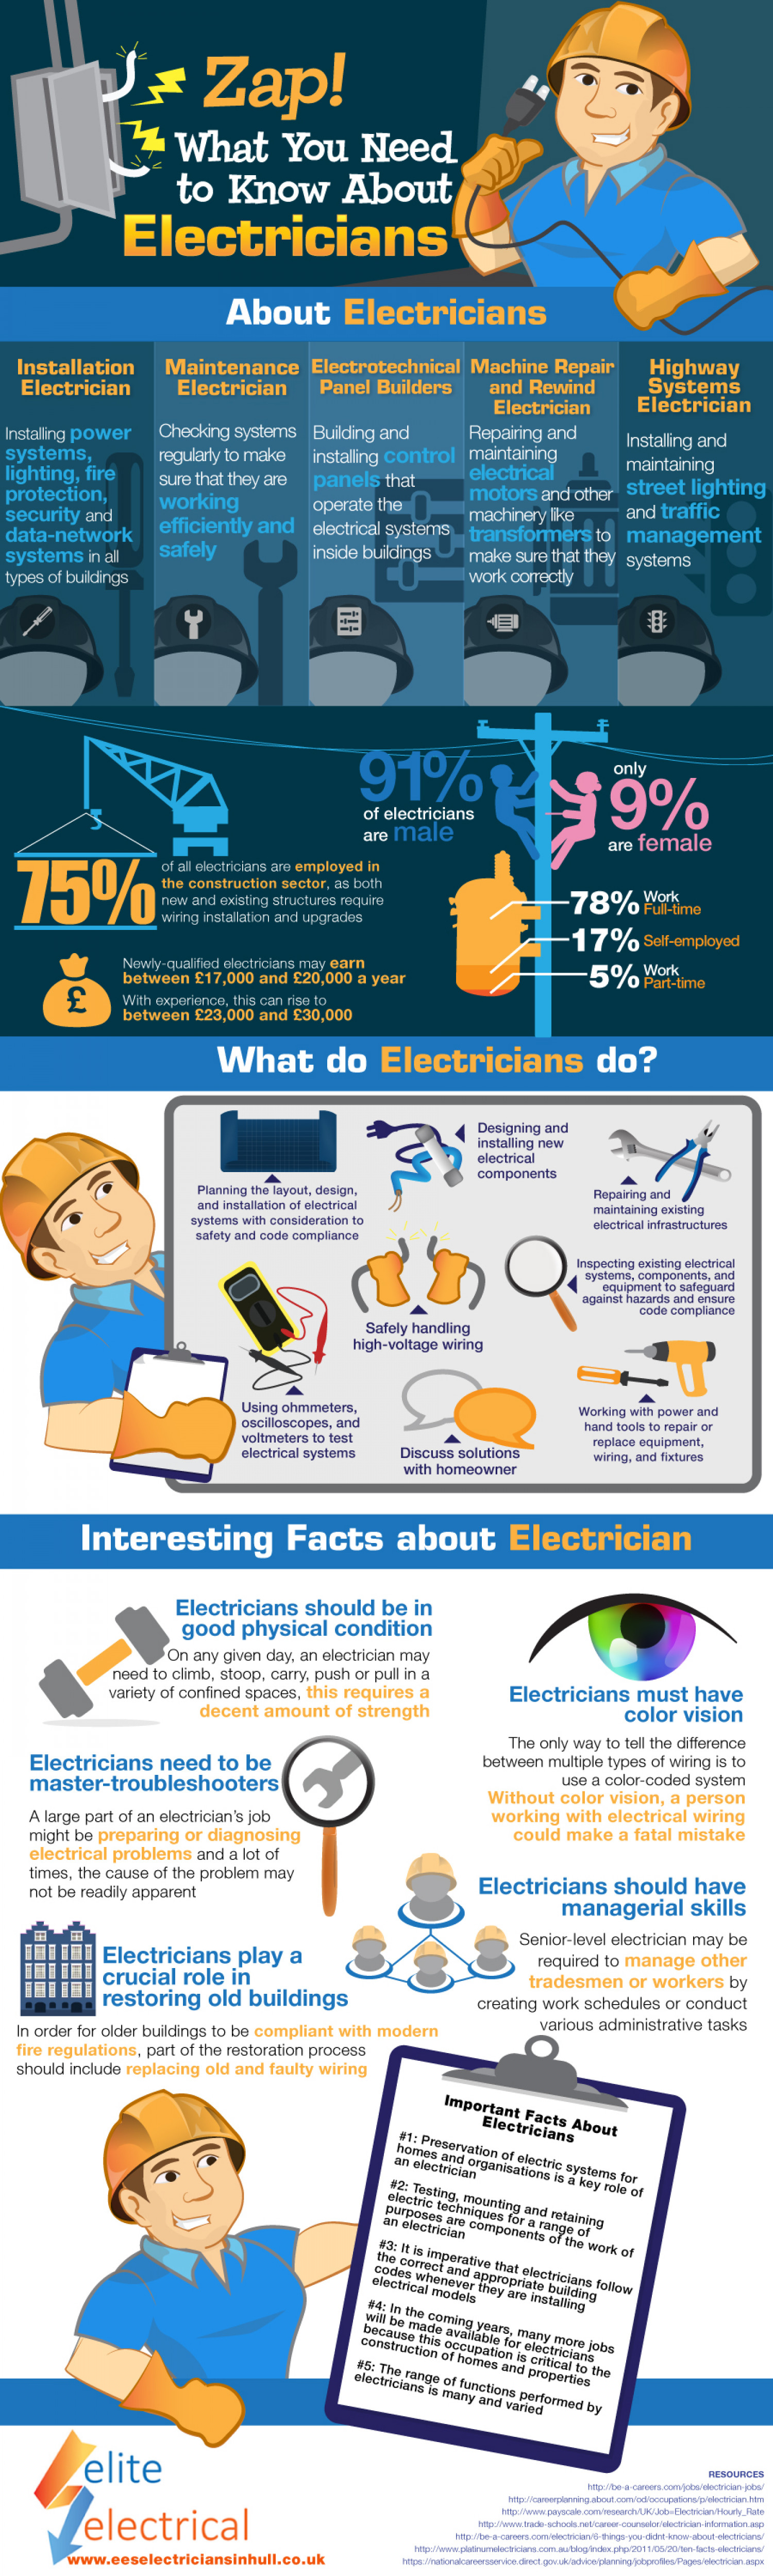 Zap! What You Need to Know About Electricians Infographic